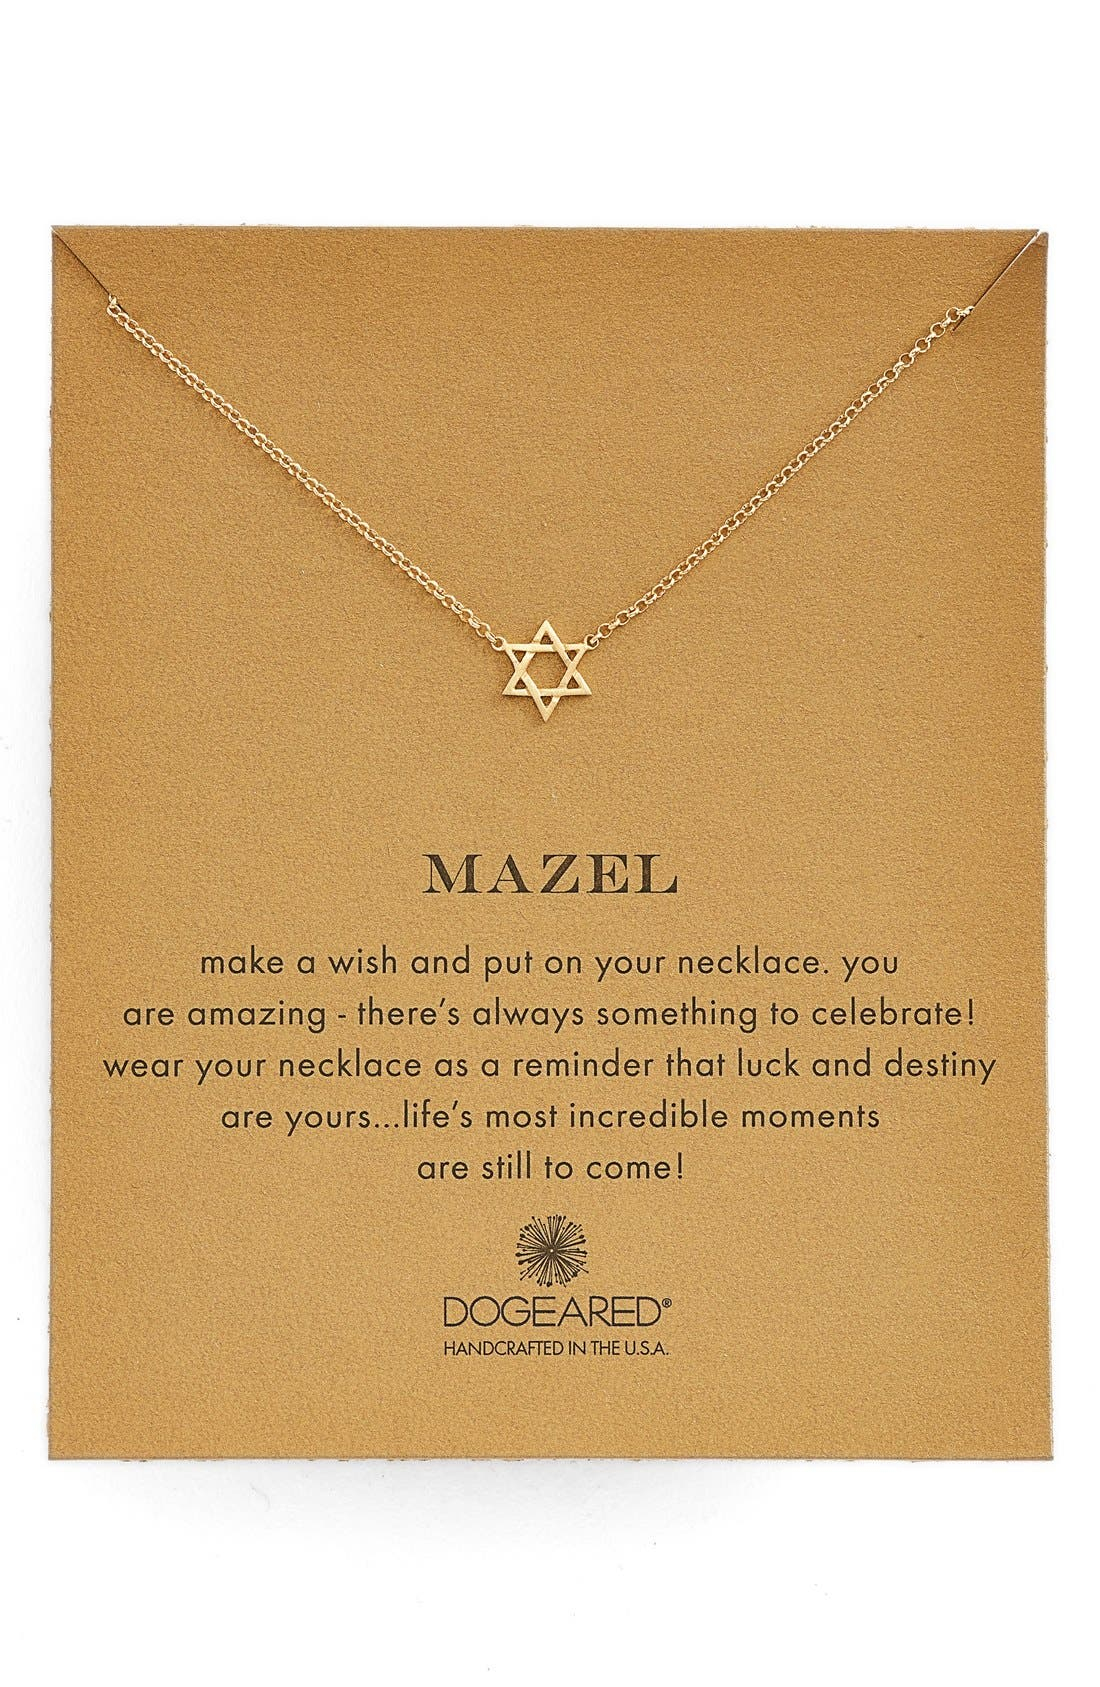 Alternate Image 1 Selected - Dogeared 'Mazel' Star of David Pendant Necklace